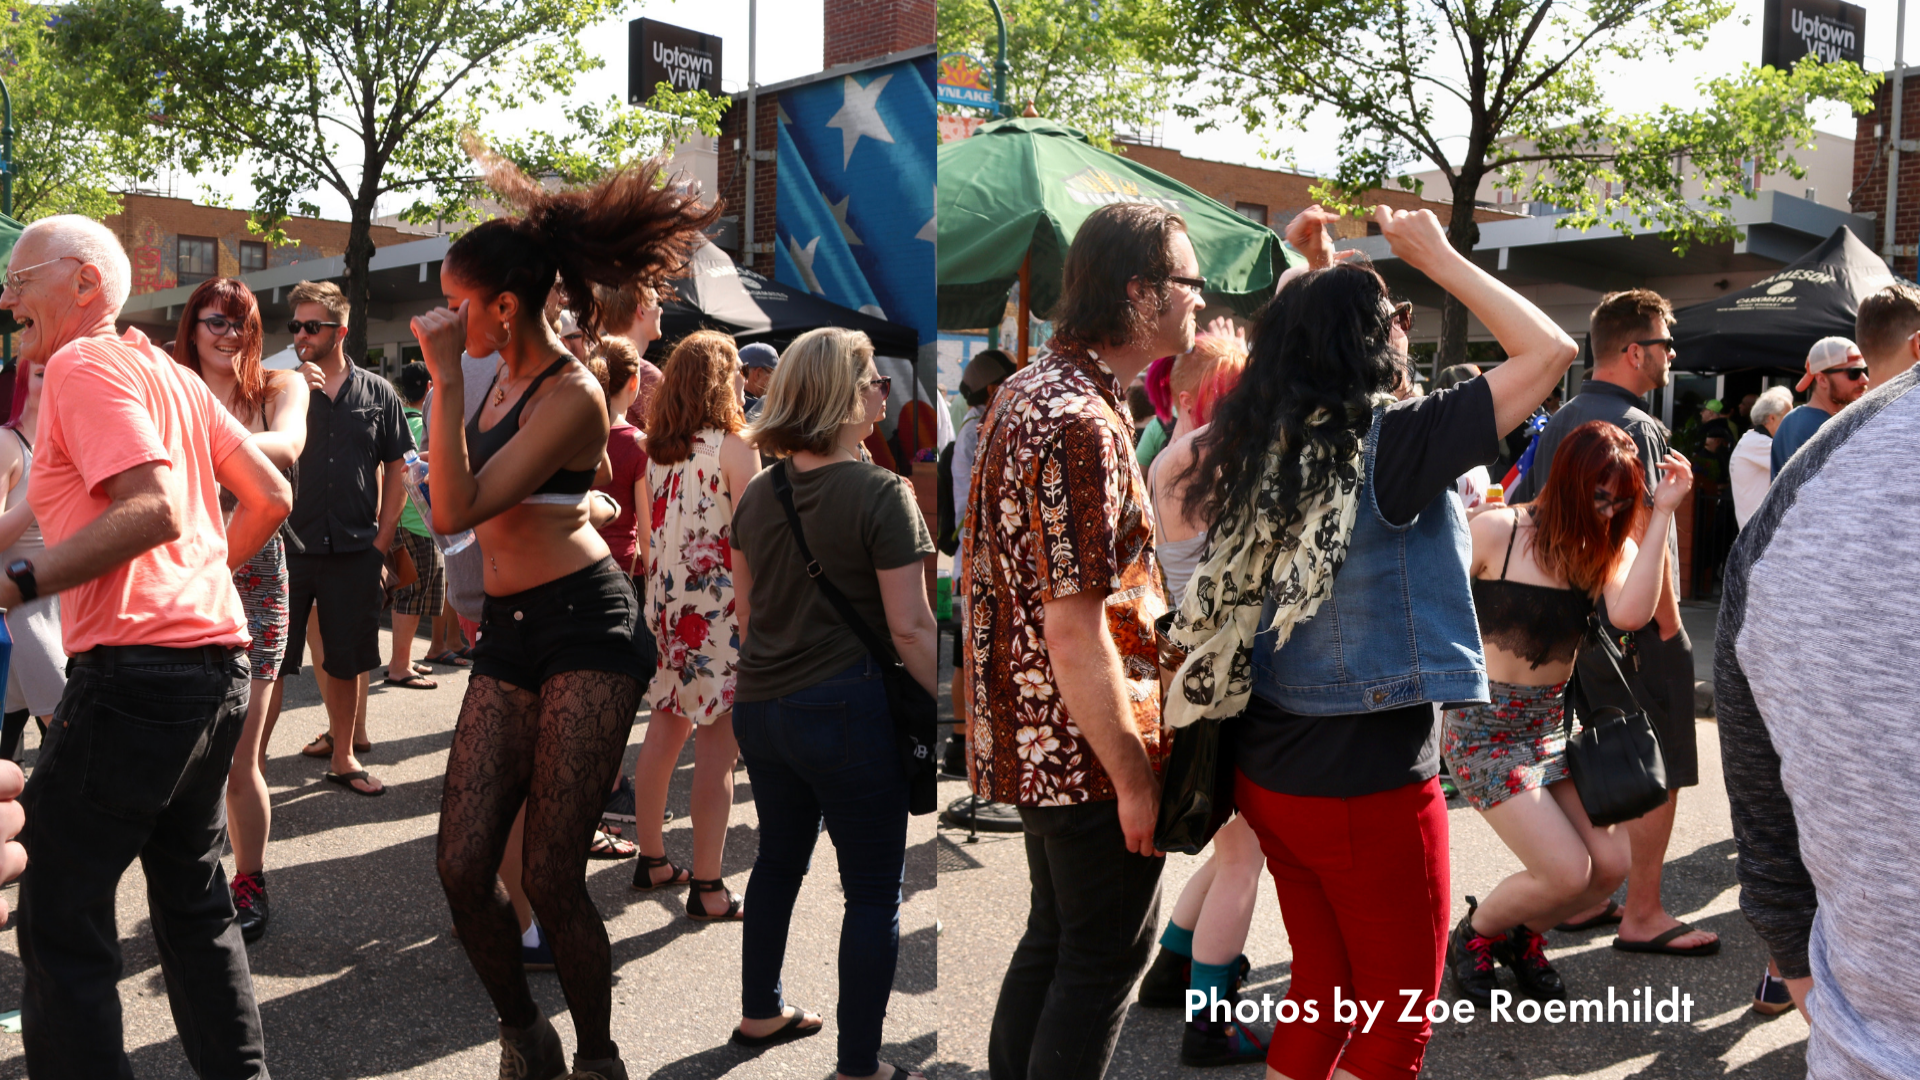 folks dancing on the street during open streets